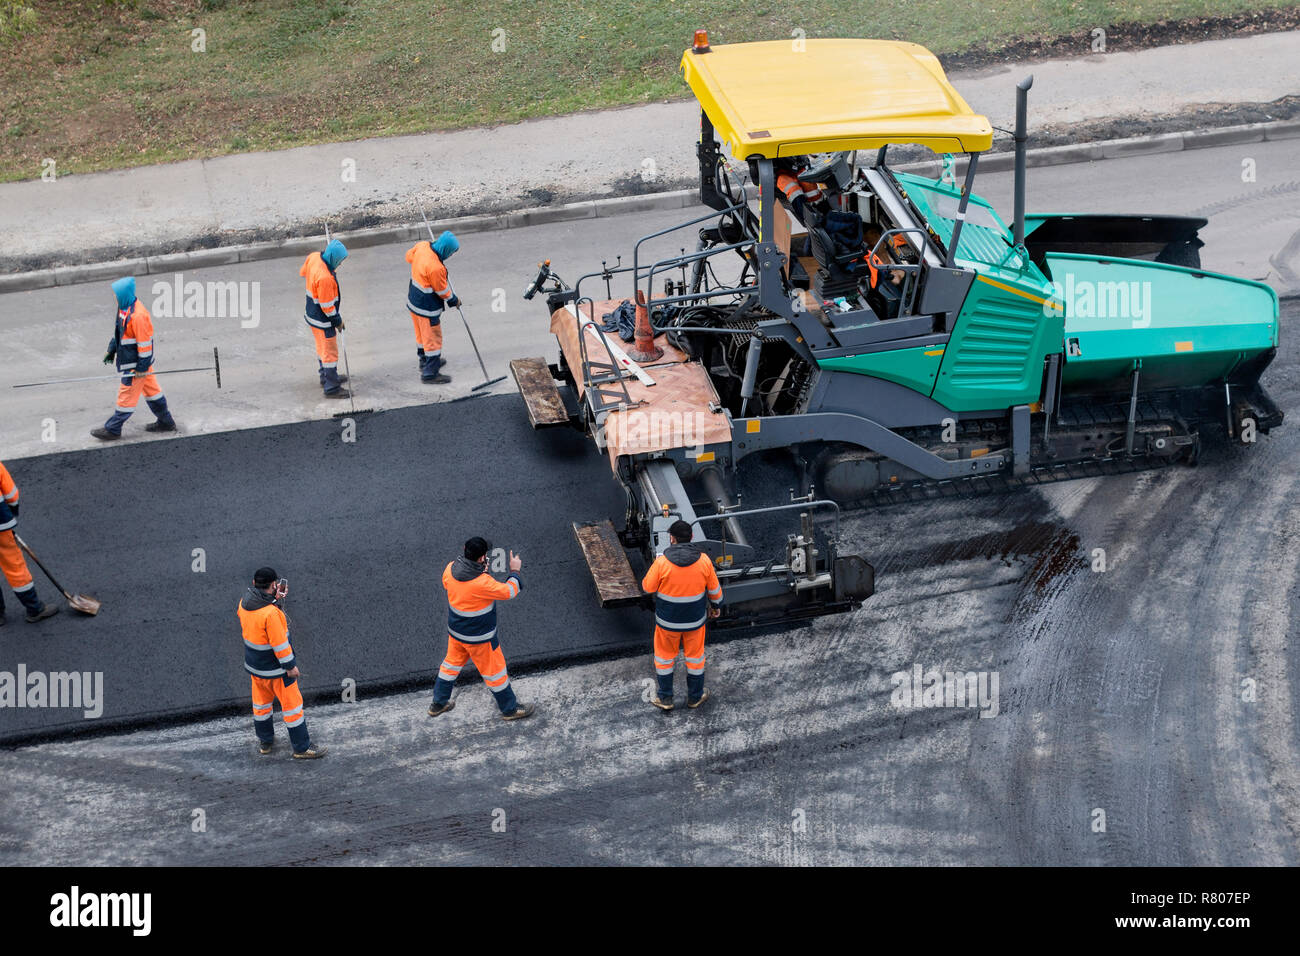 Asphalt paver machine or paver finisher places a layer of fresh asphalt. Road renewal process, construction working. Collage, unrecognizable workers. - Stock Image